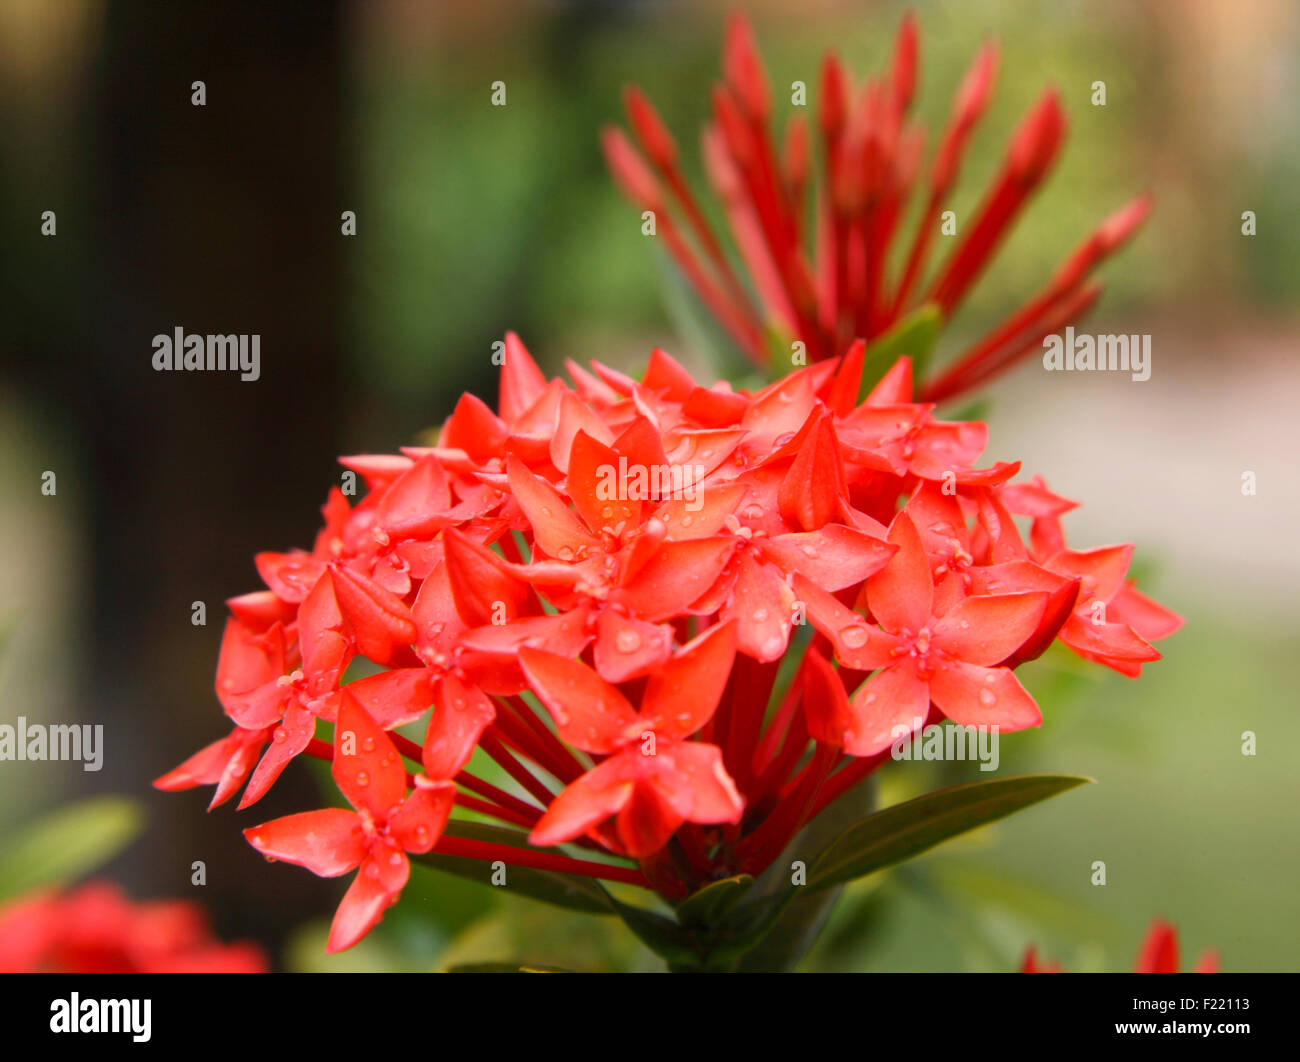 Ixora flower close up, Seychelles. - Stock Image